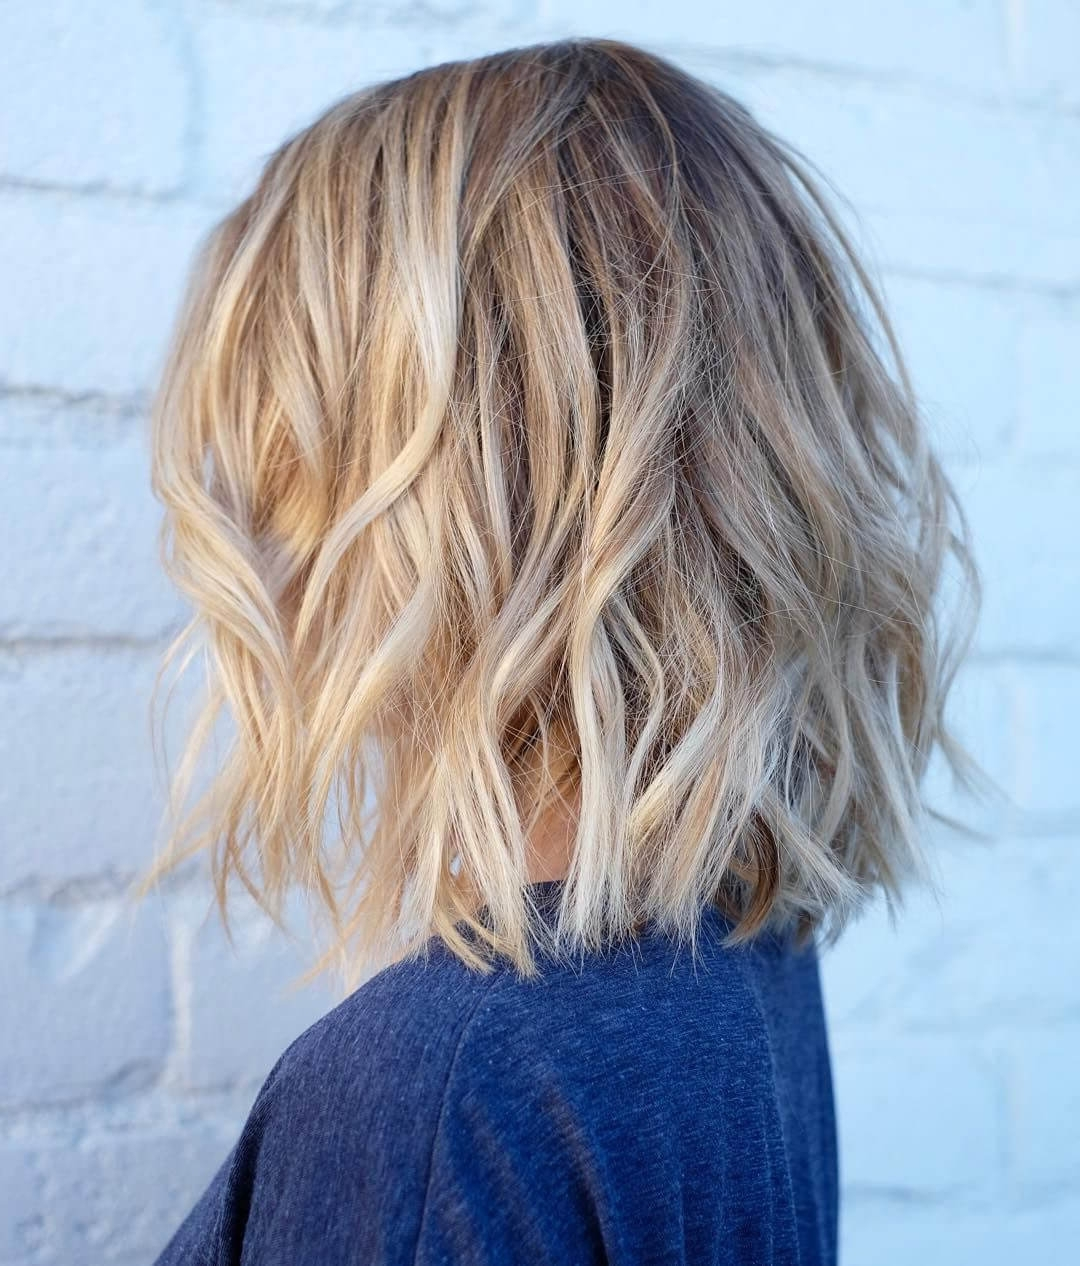 50 Fresh Short Blonde Hair Ideas To Update Your Style In 2018 Throughout Well Known Gently Angled Waves Blonde Hairstyles (View 8 of 20)